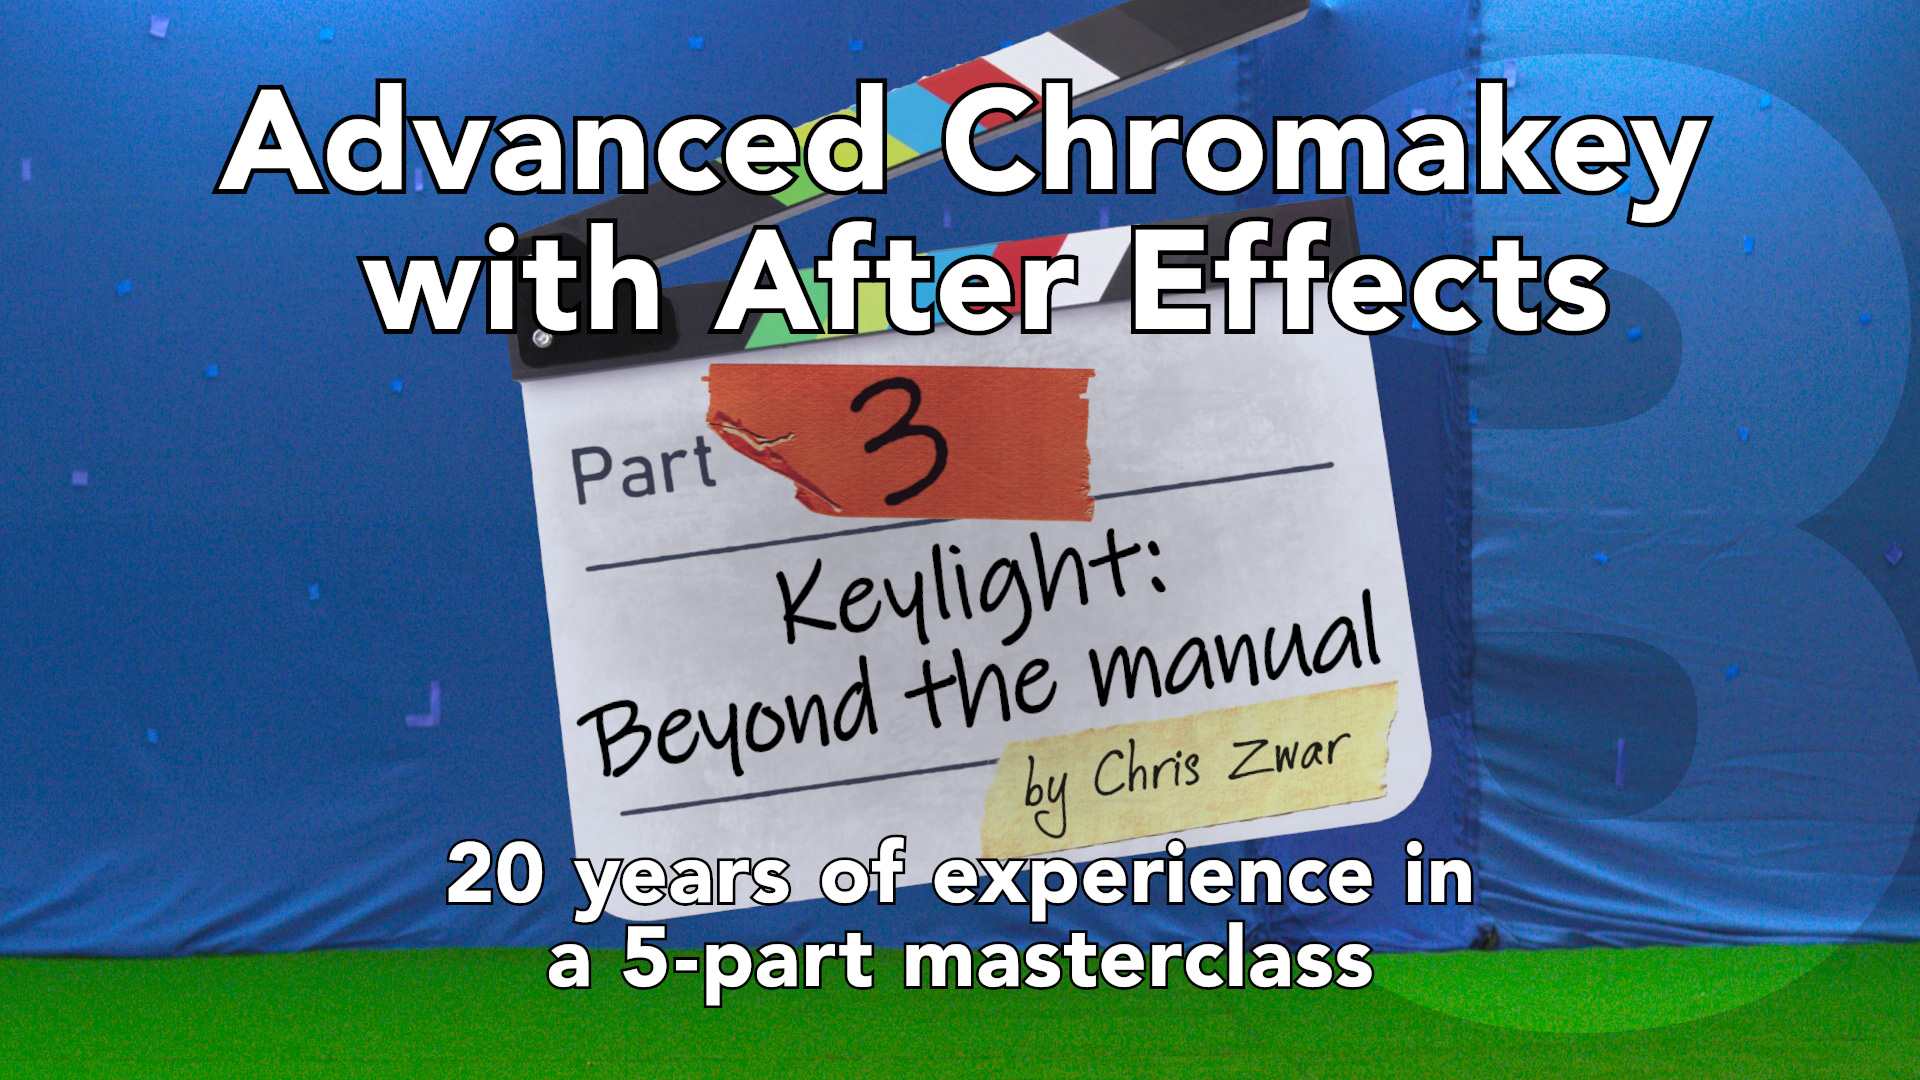 Advanced keying with After Effects: Part 3 by Chris Zwar - ProVideo Coalition